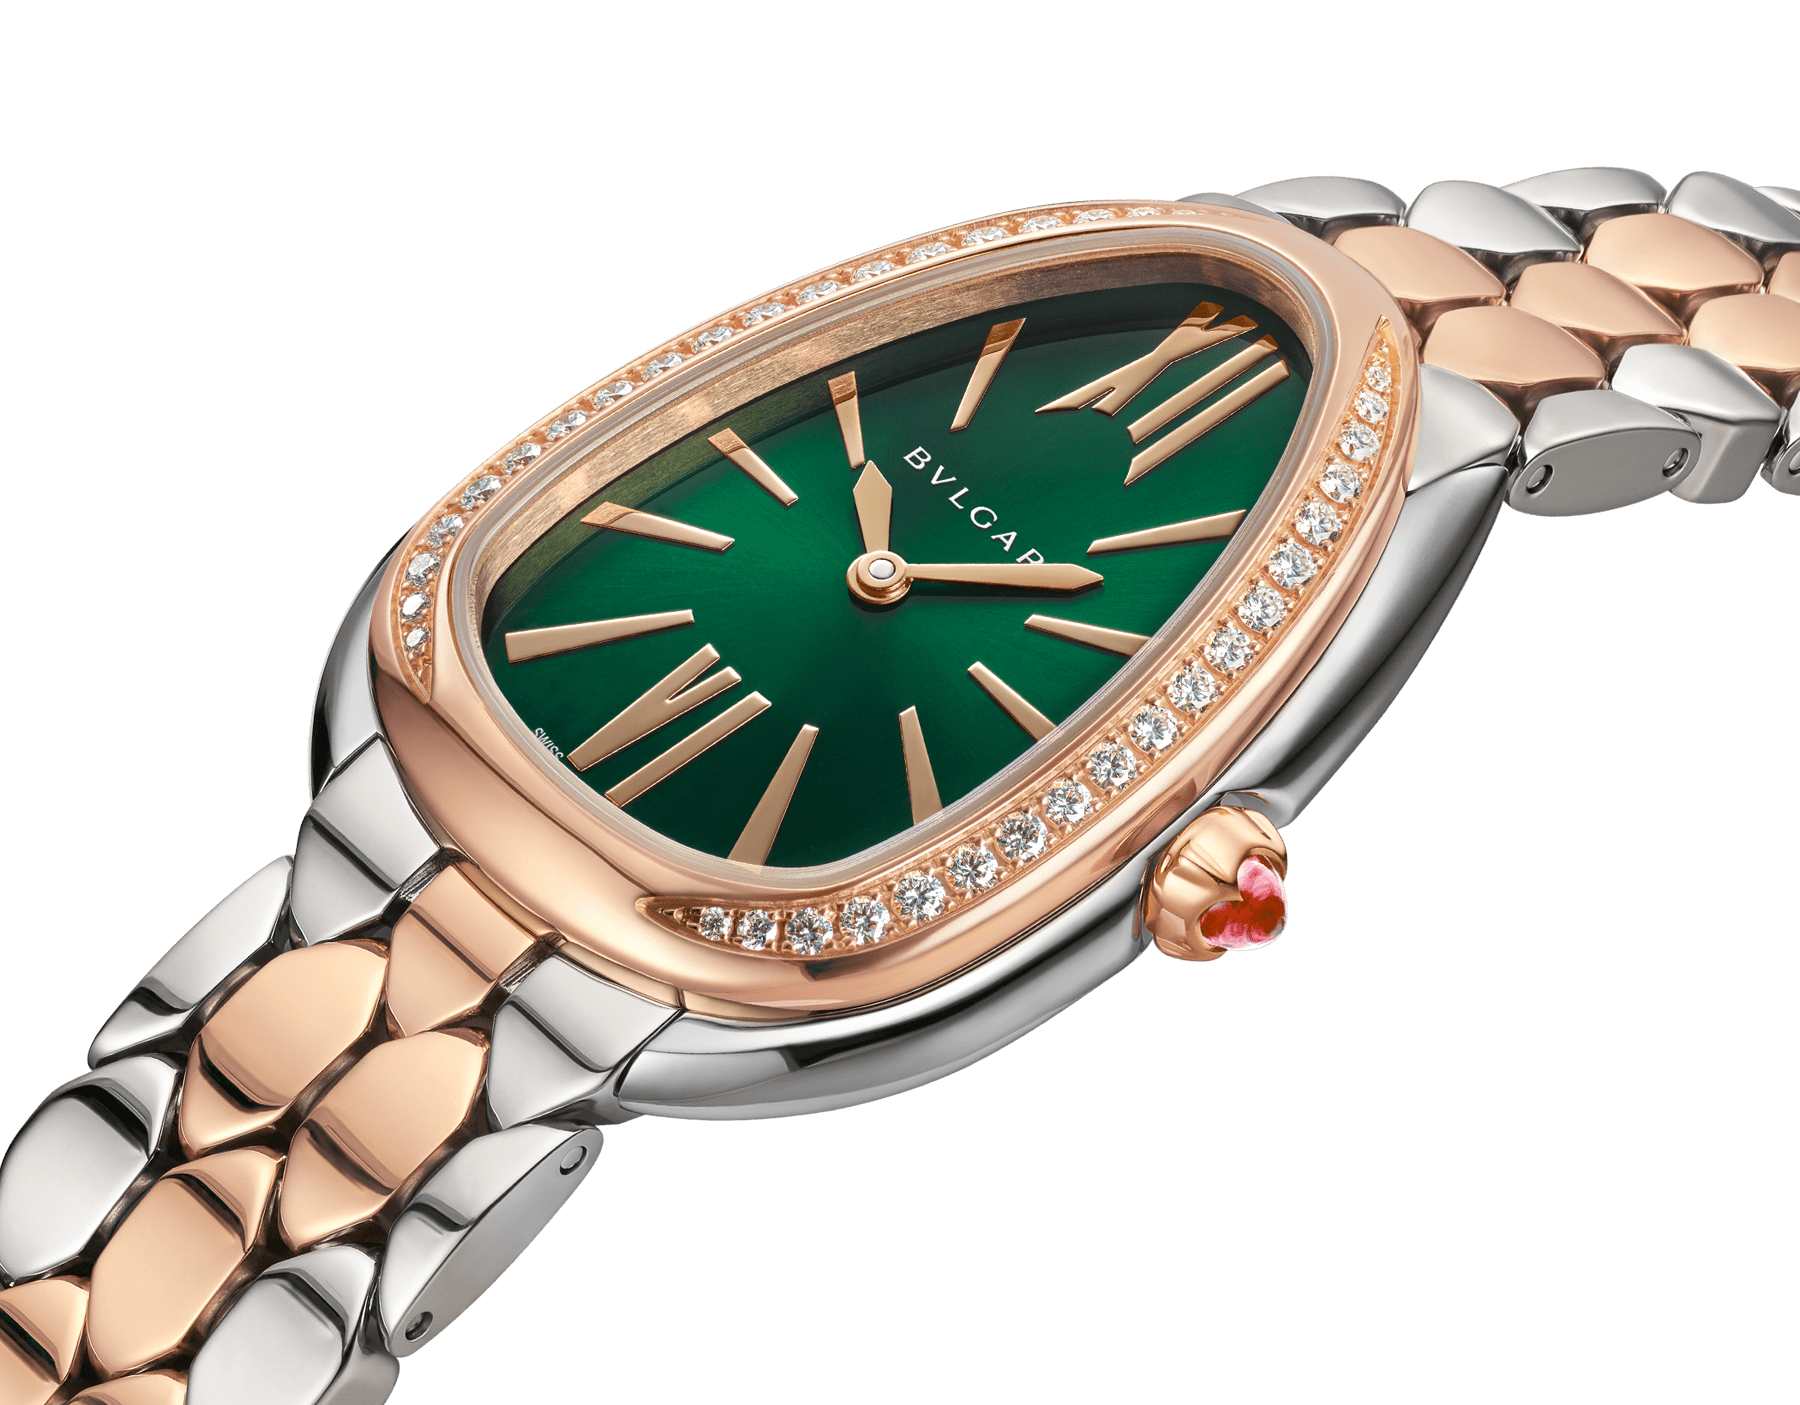 Serpenti Seduttori watch with stainless steel case, 18 kt rose gold bezel set with 38 round brilliant-cut diamonds (about 0.39 ct), green dial and 18 kt rose gold and stainless steel bracelet. Size 165 mm. Water-resistant up to 30 meters. Special Edition exclusive to United Kingdom and Middle East 103526 image 2